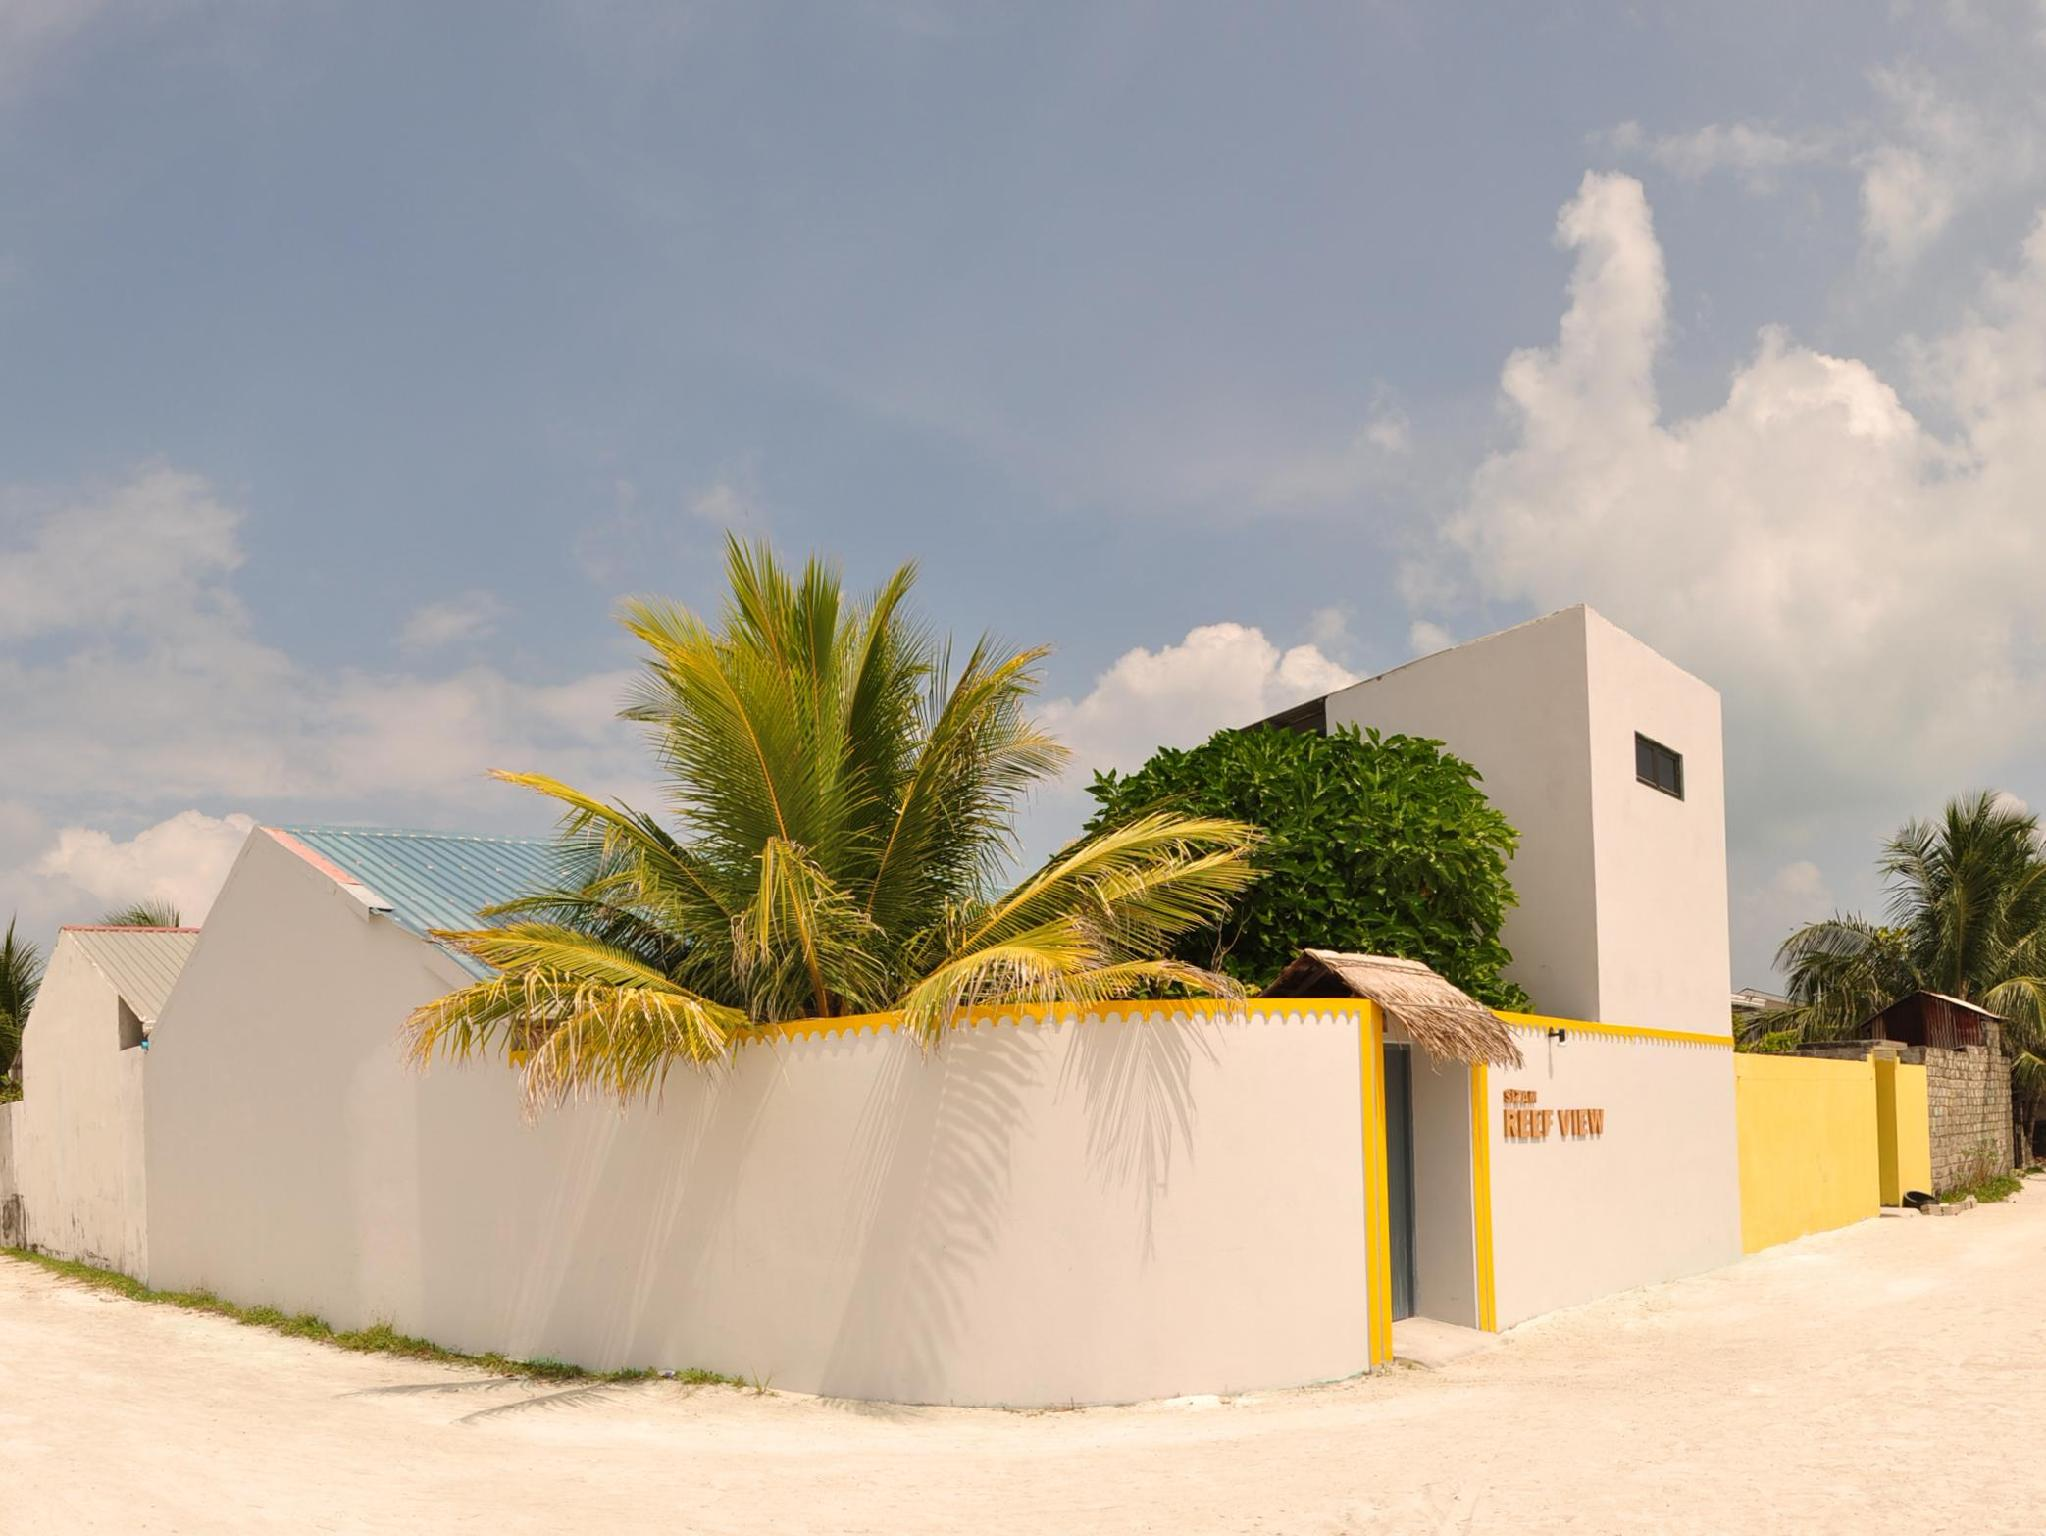 Sizam Reef View Guest House